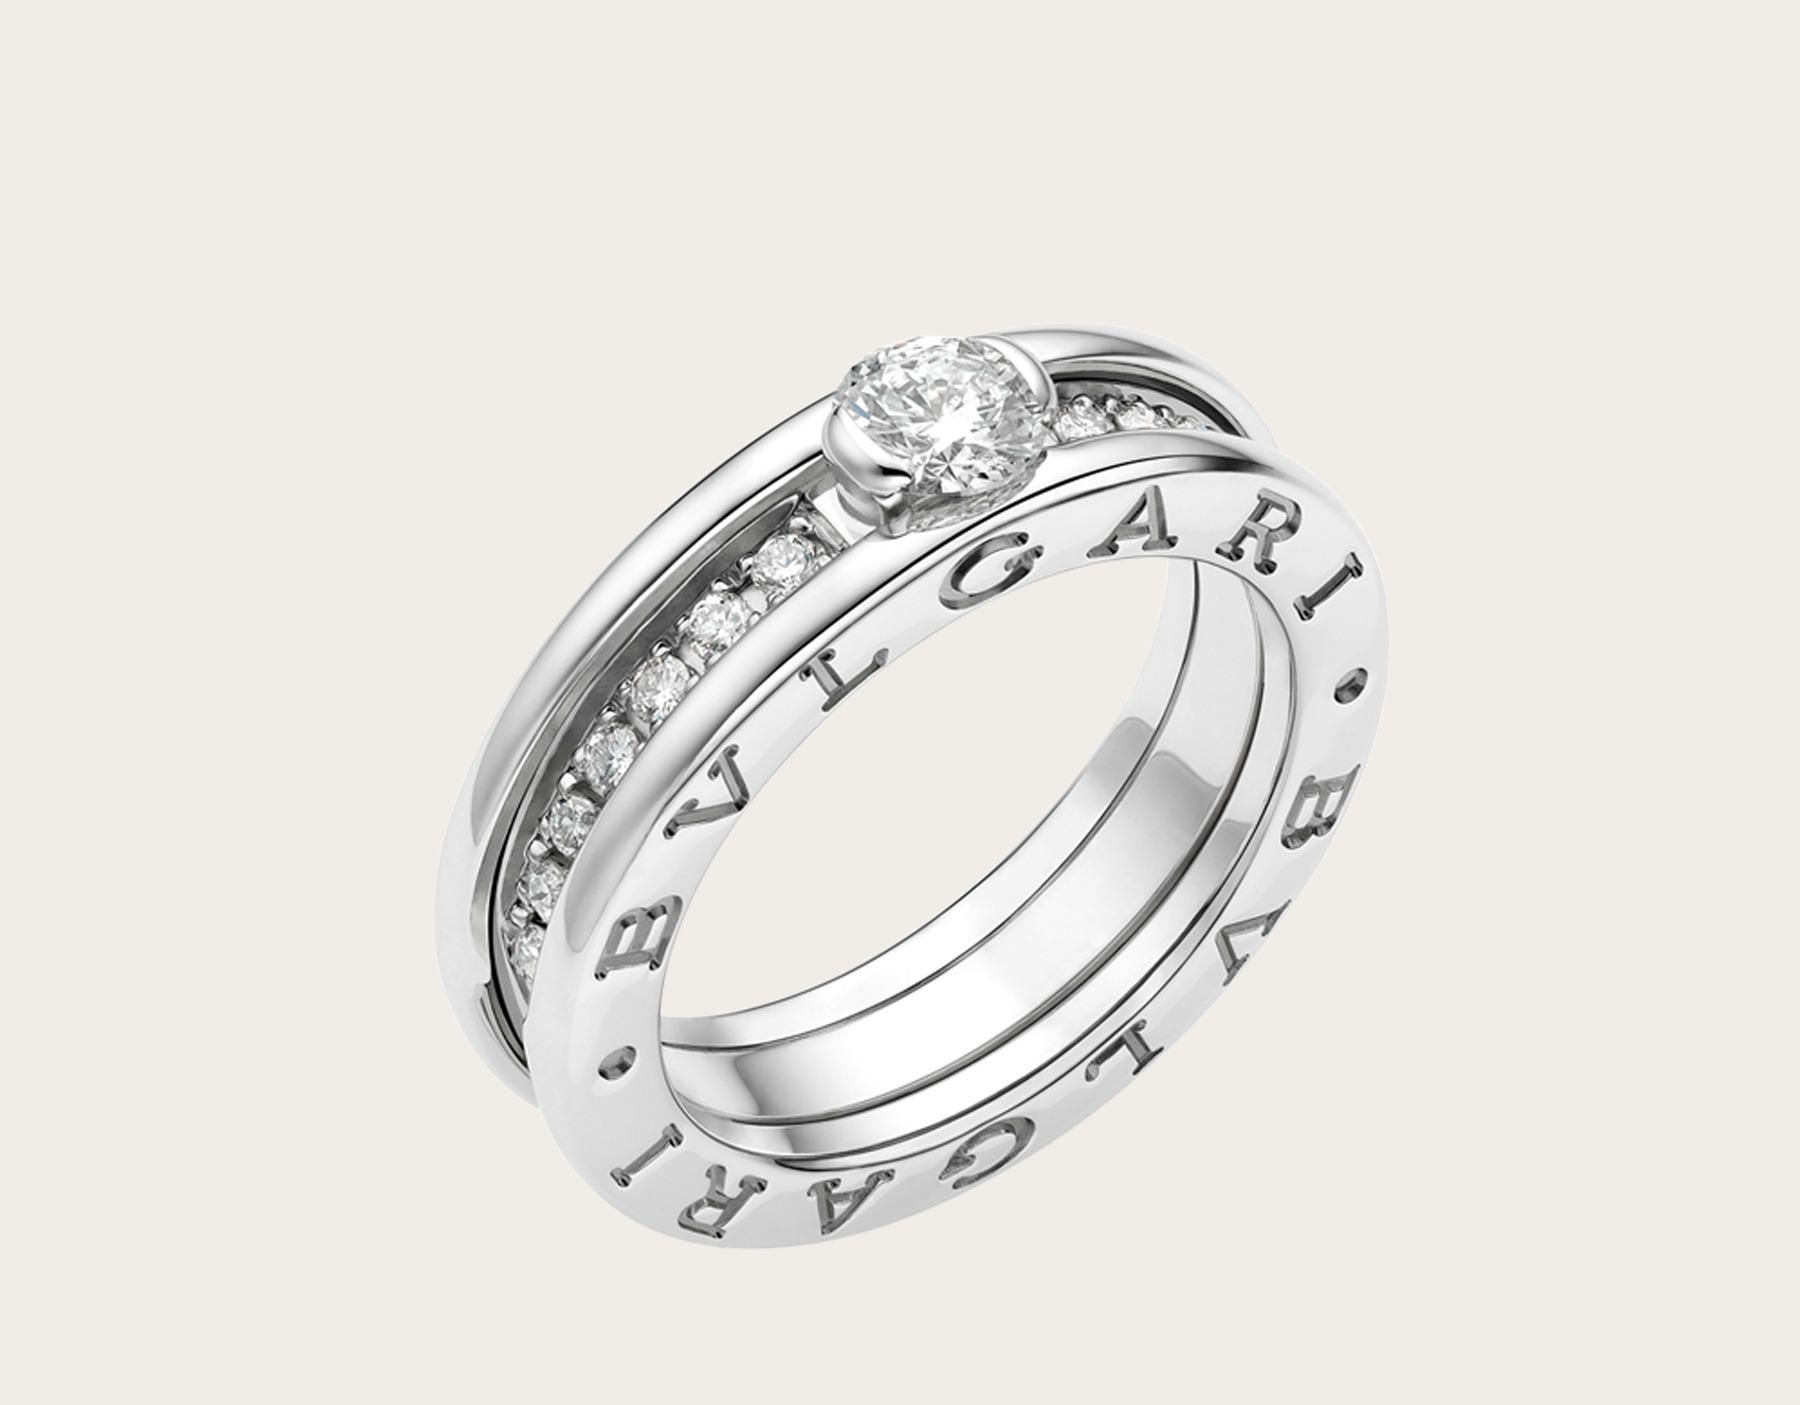 Ring B Zero1 An852397 Discover Bvlgari S Collections And Read More